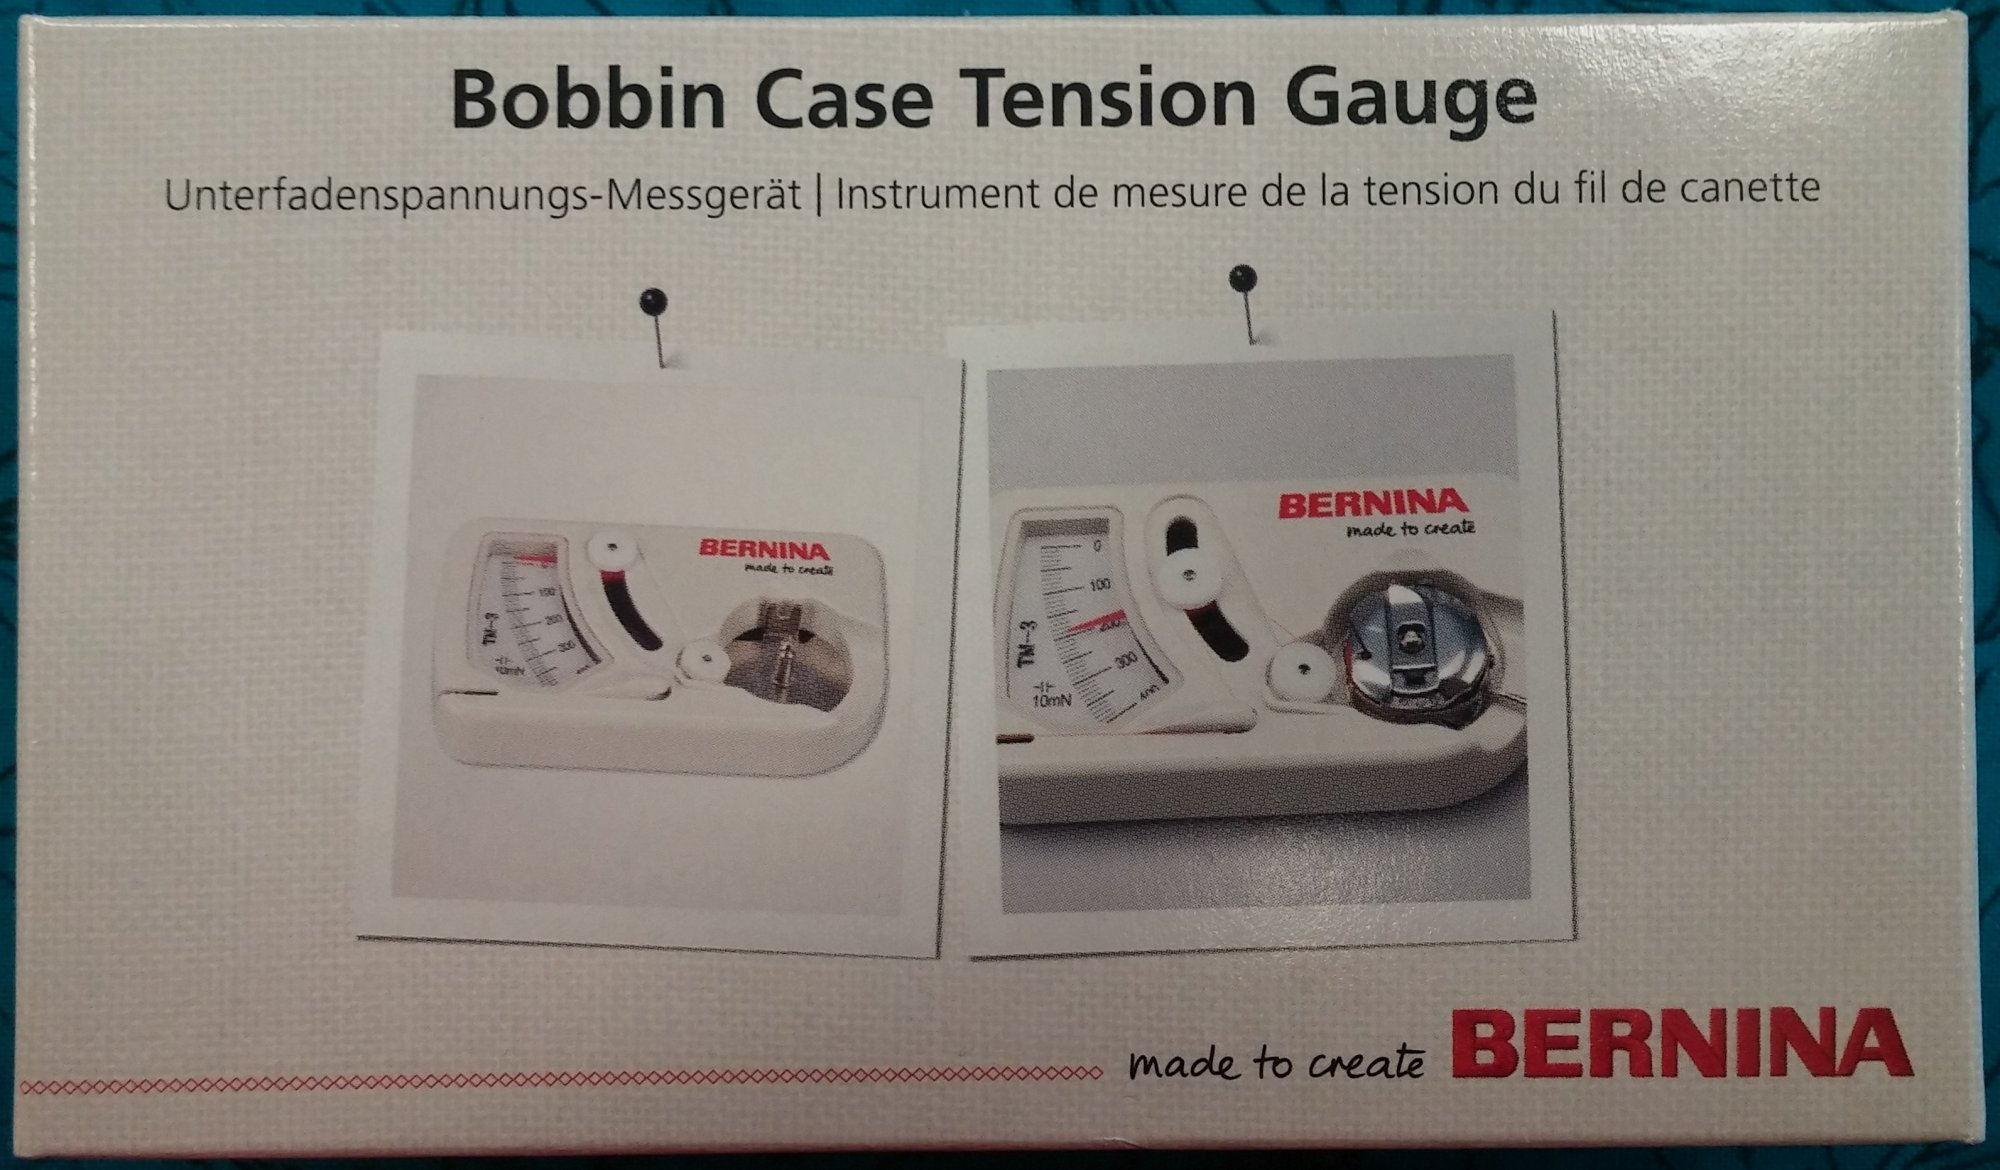 Bobbin Case Tension Gauge